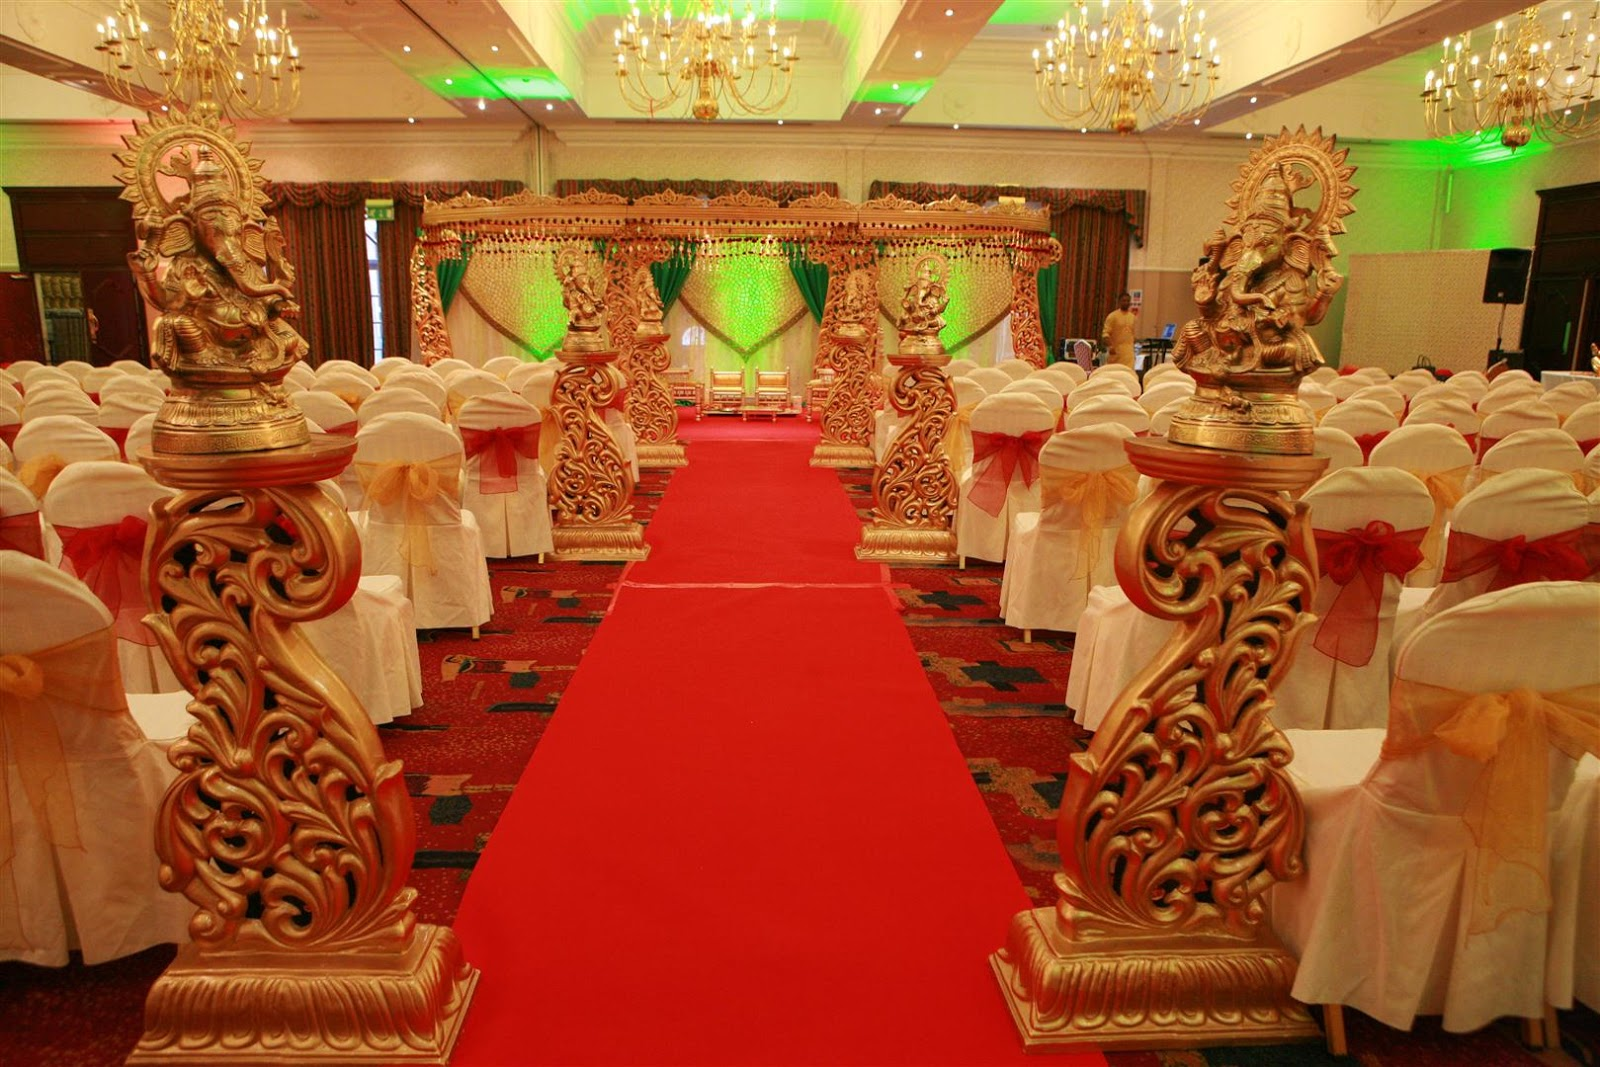 Asian wedding decorations romantic decoration our favourite asian wedding mazs blog our favourite asian wedding decorations in coventry junglespirit Gallery